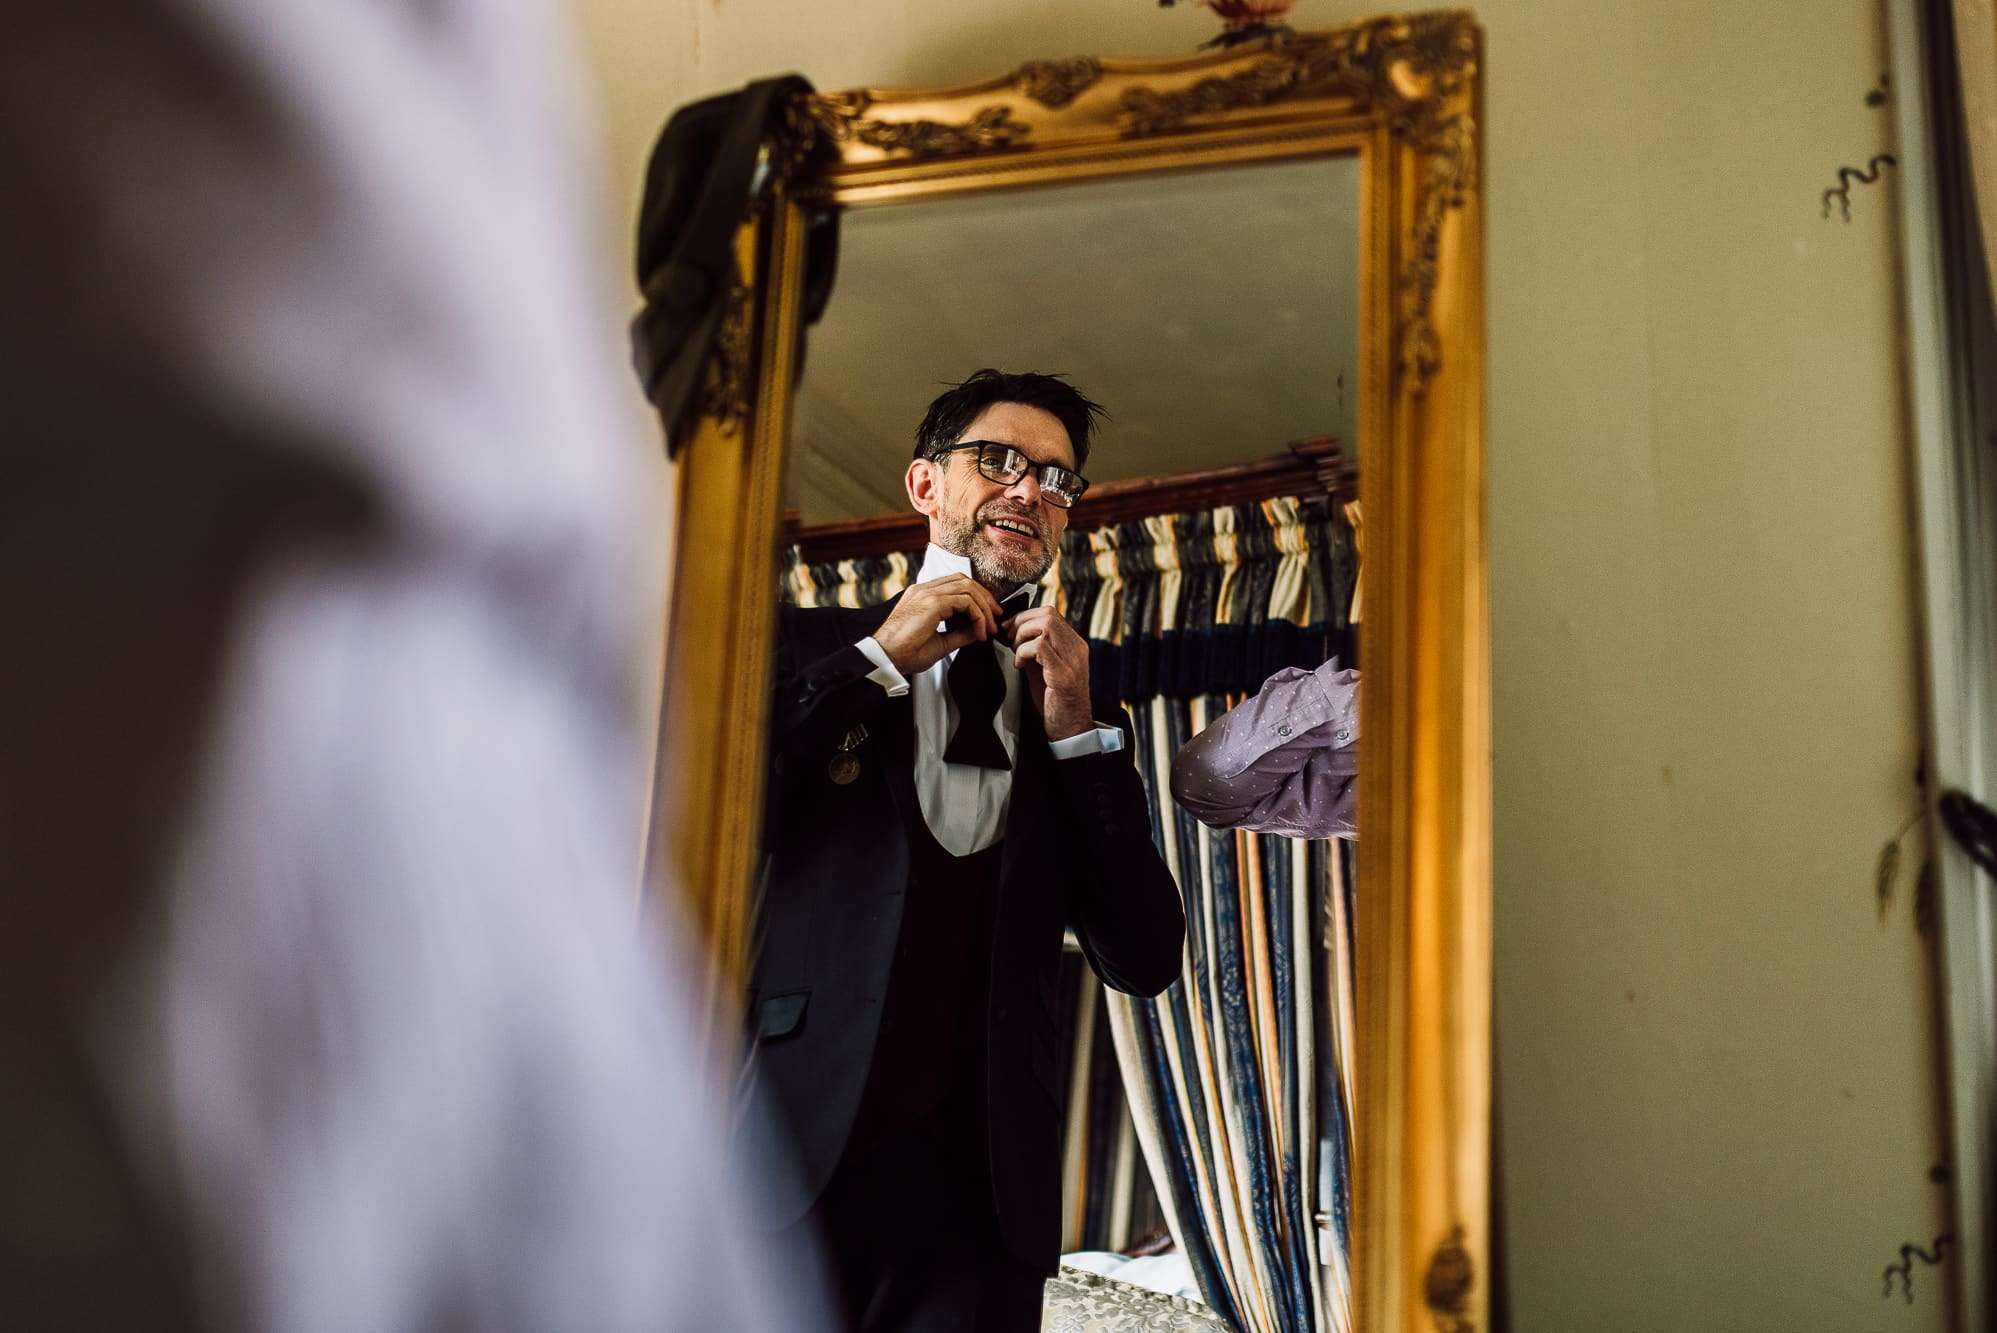 Groom getting ready whilst looking in the mirror